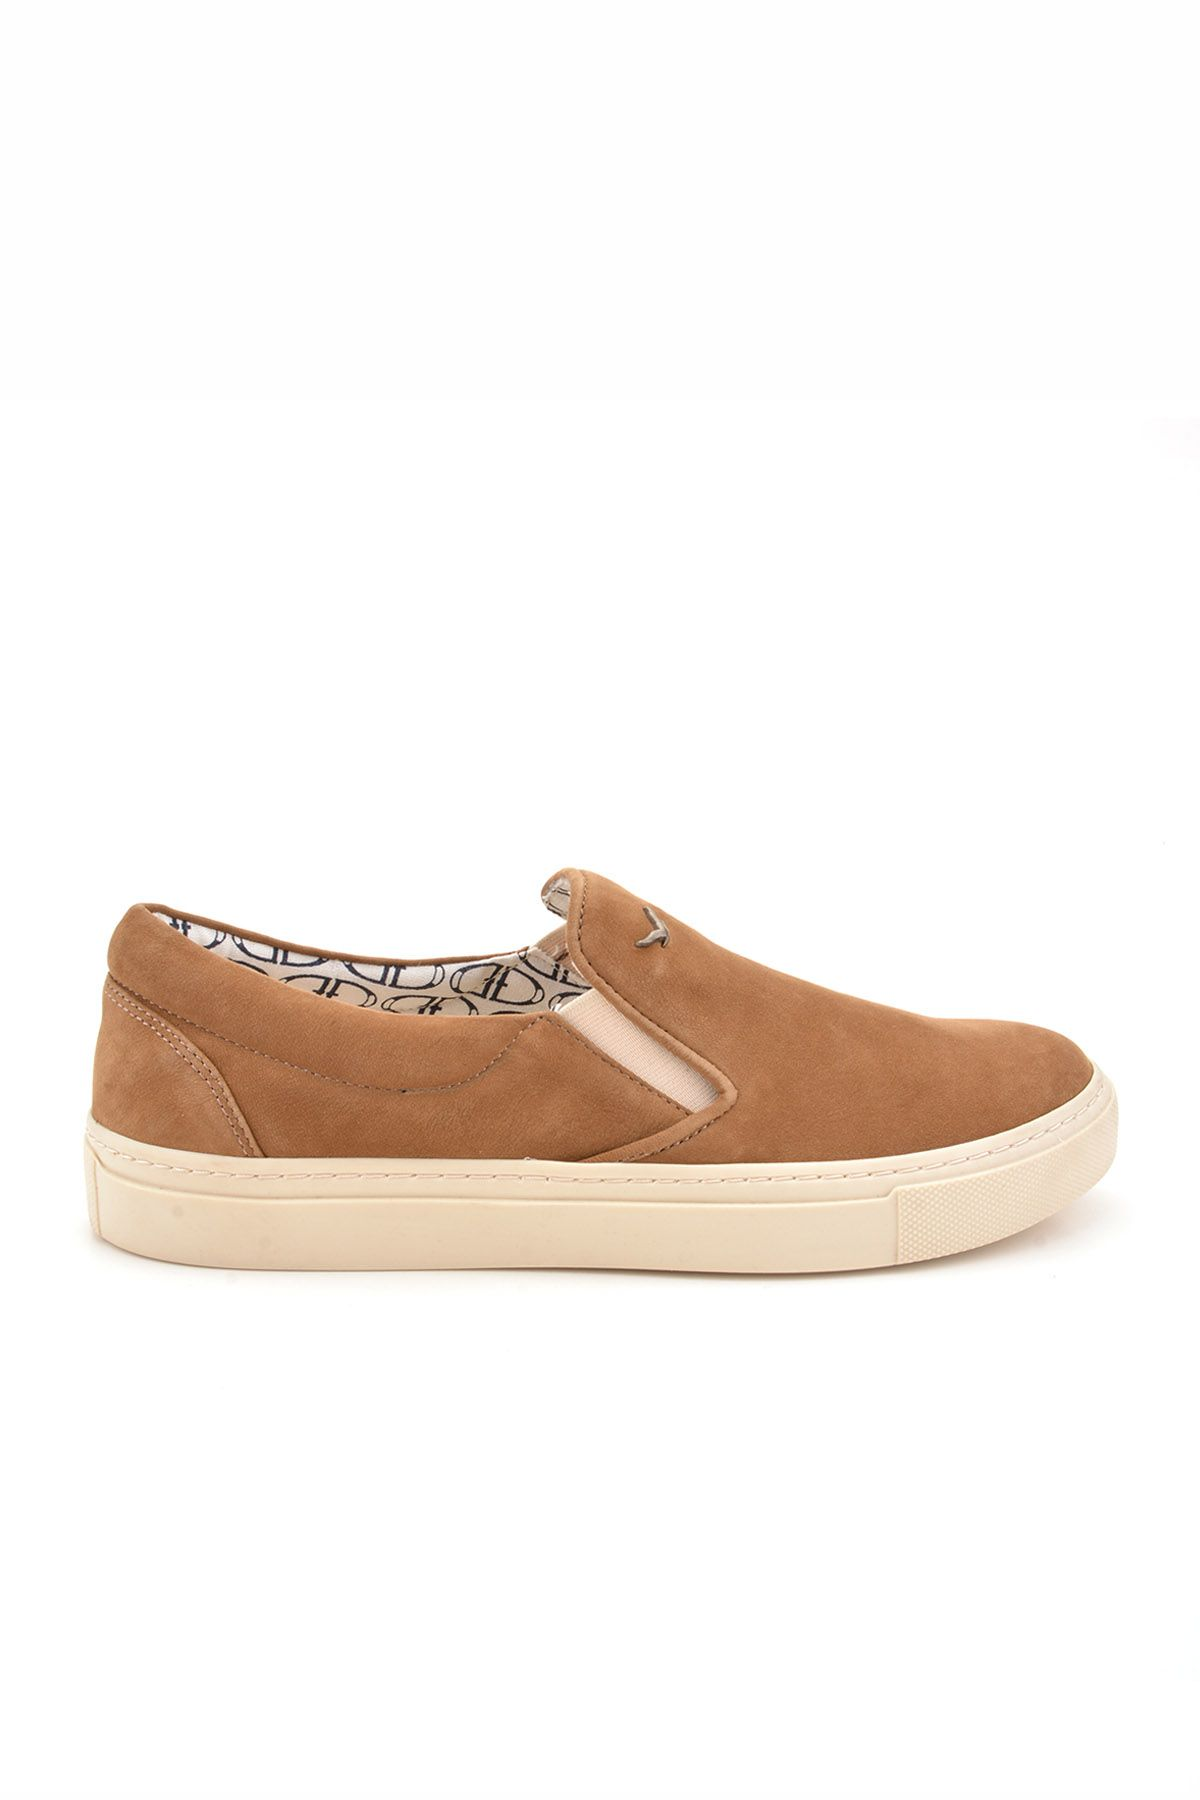 Art Goya Women Sneakers From Genuine Leather Sand-colored